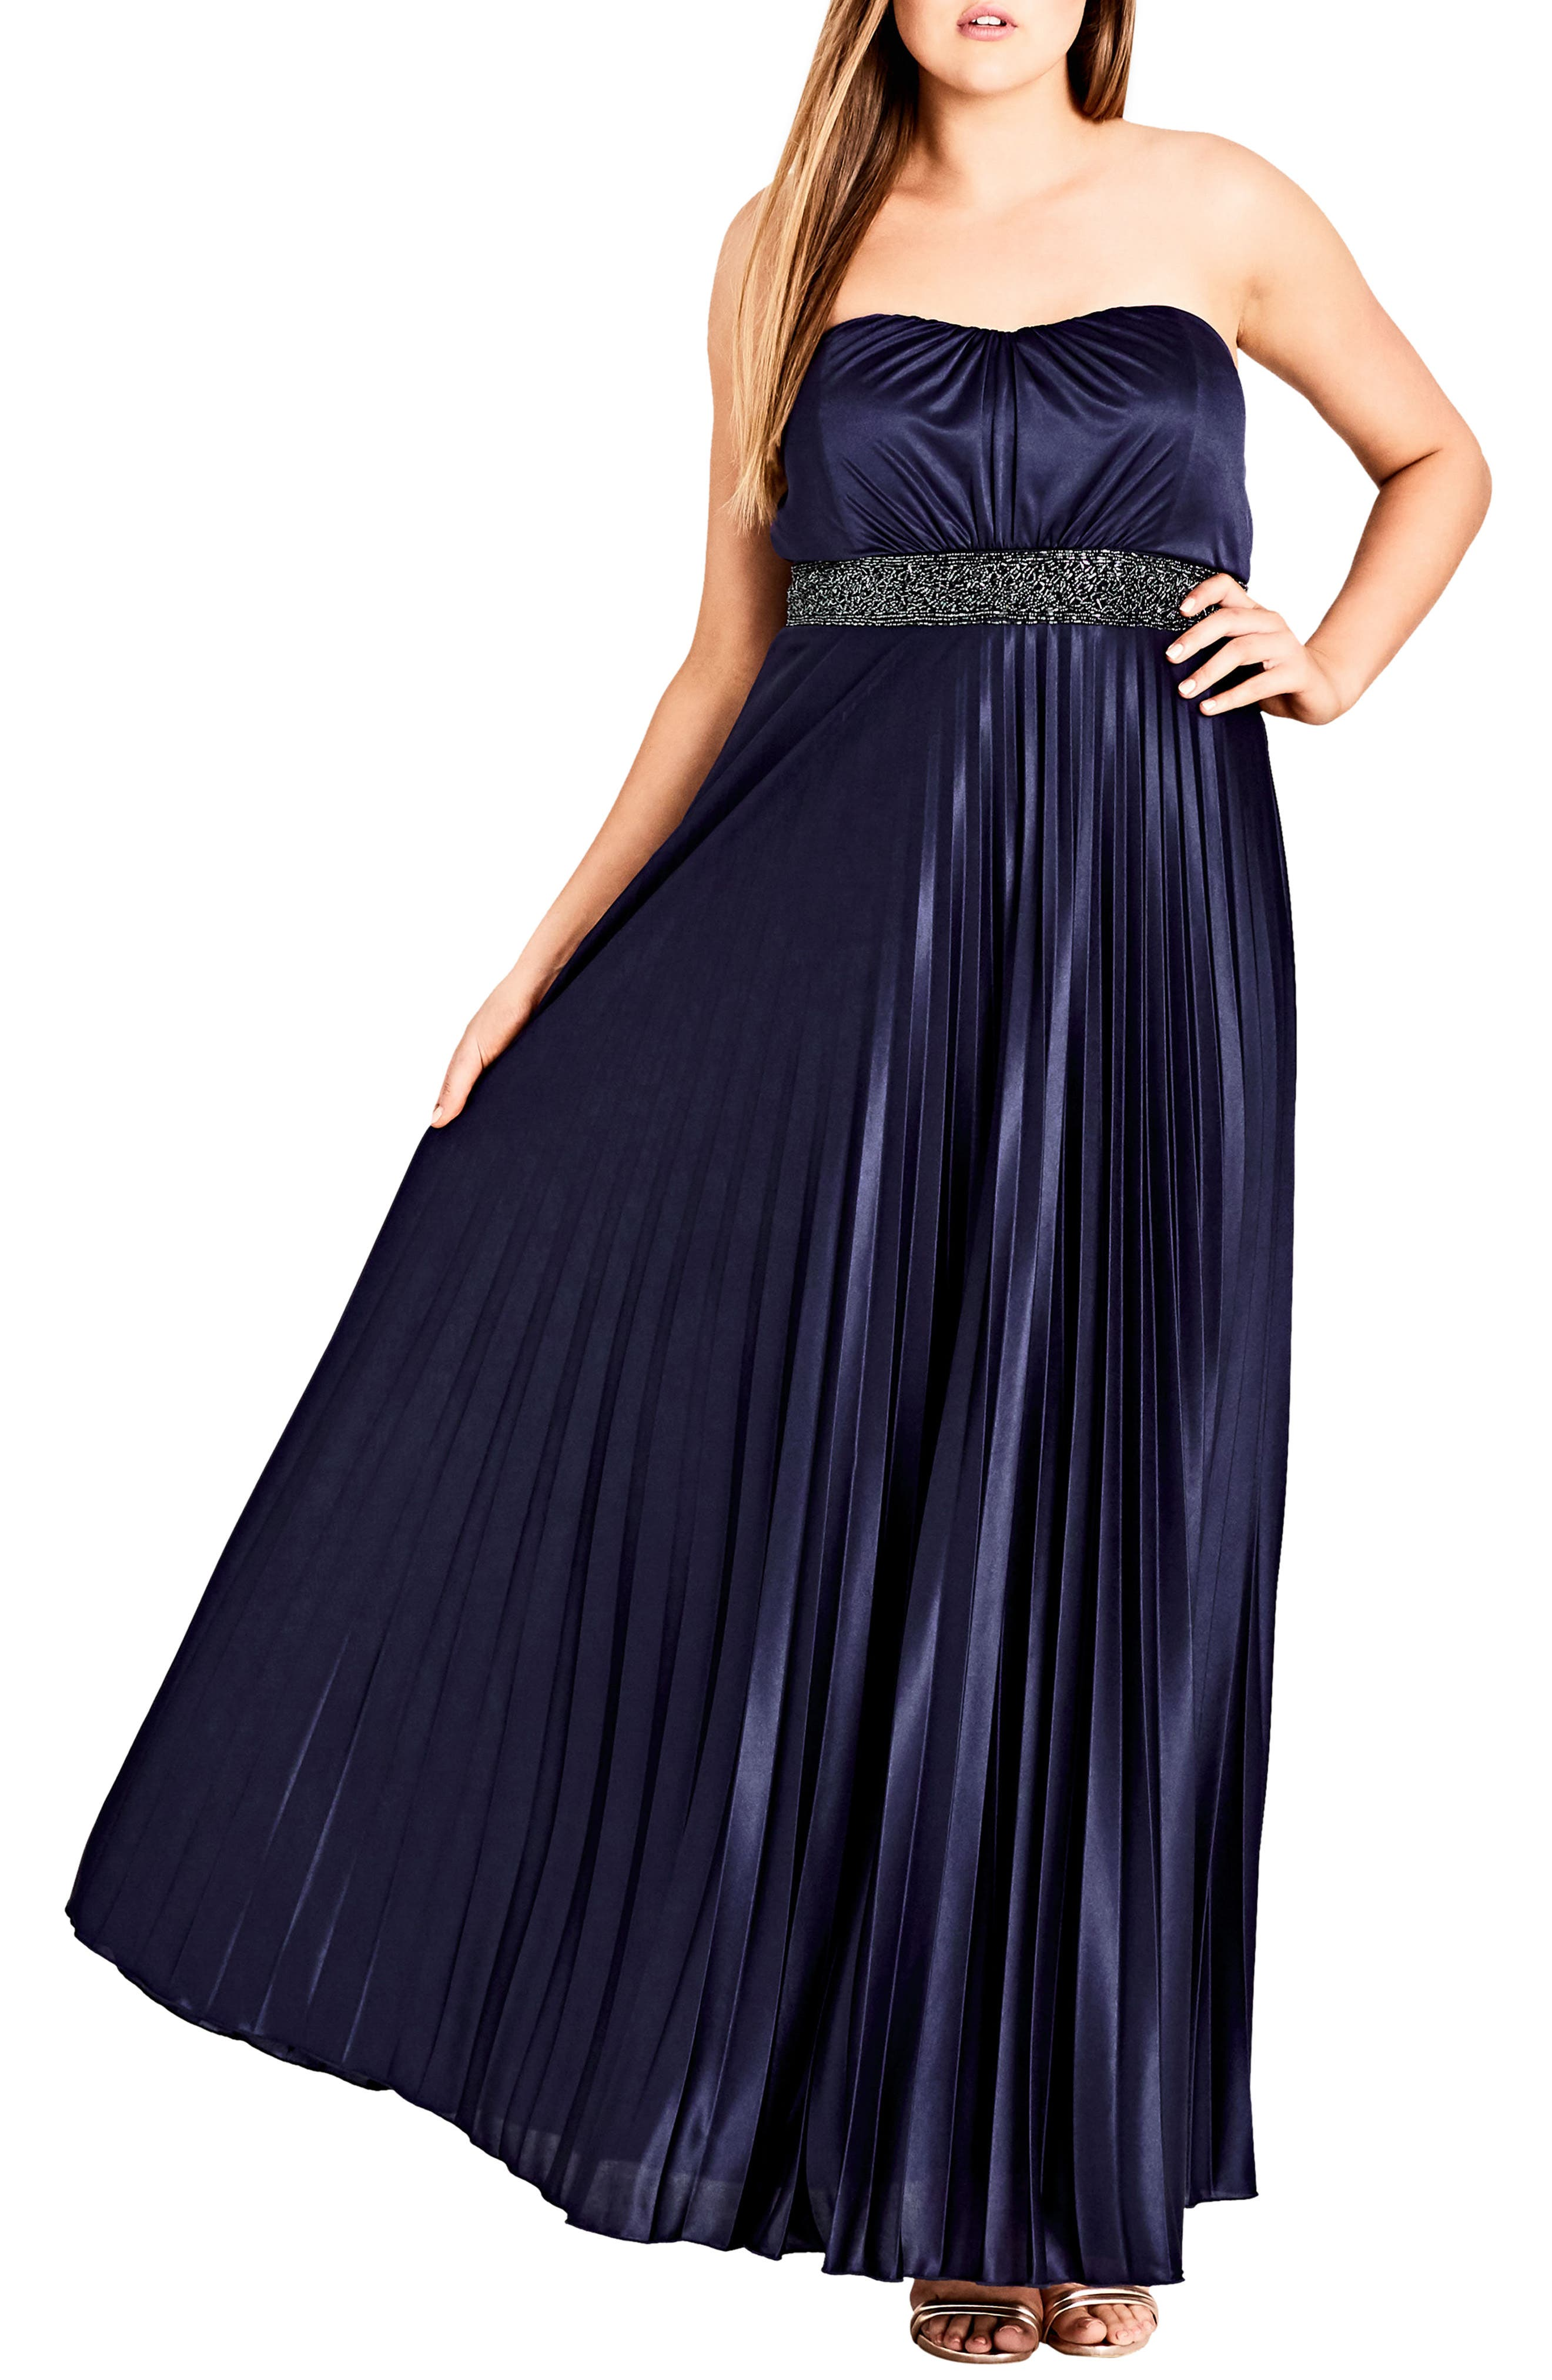 70s Prom, Formal, Evening, Party Dresses Plus Size Womens City Chic Helena Embellished Strapless Maxi Dress $83.40 AT vintagedancer.com